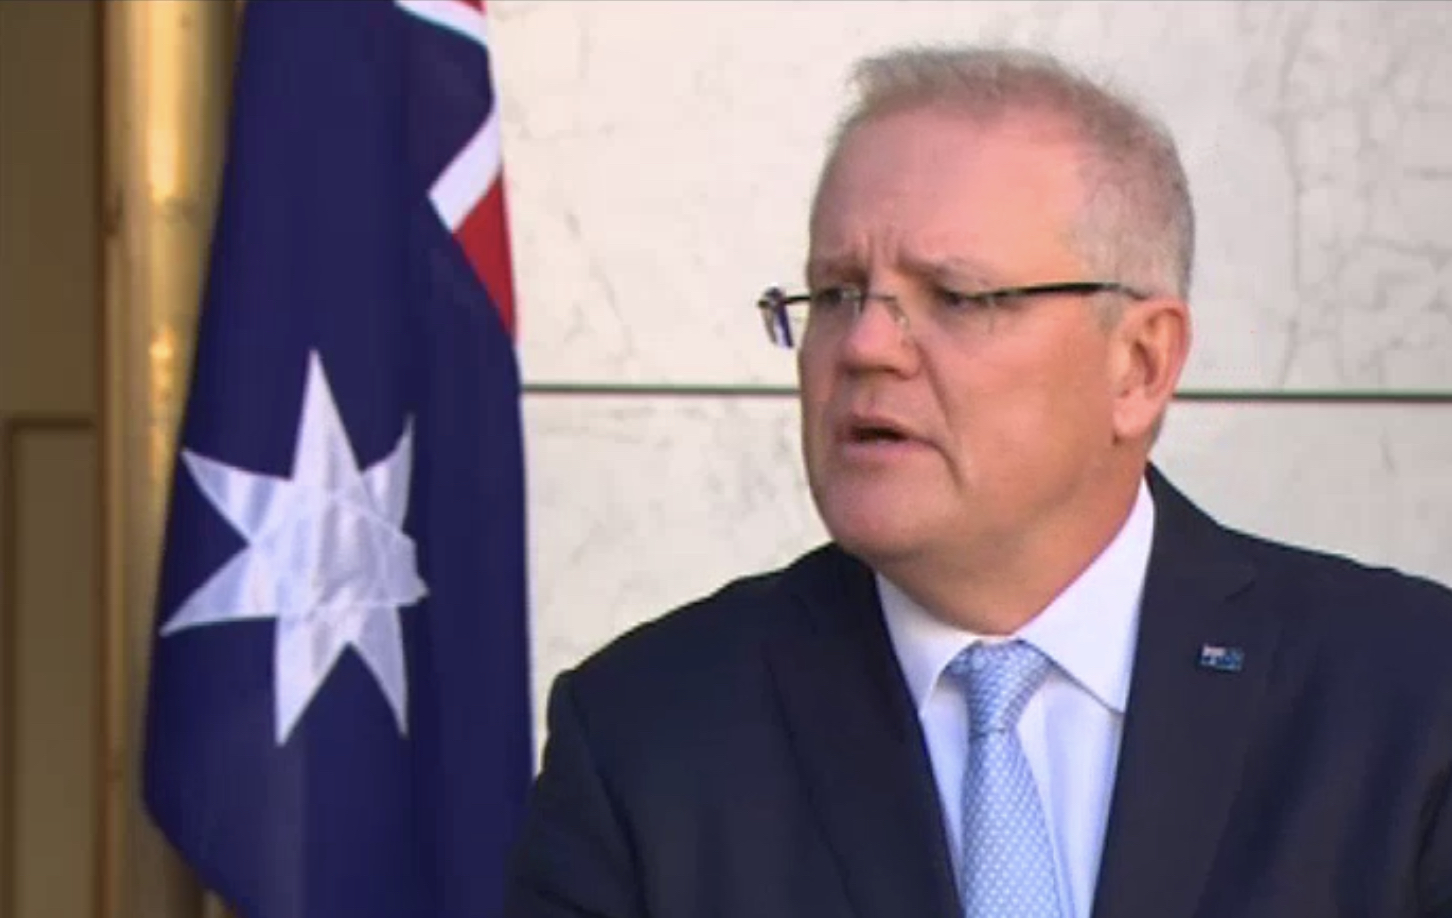 Prime Minister Scott Morrison announces Jobseeker Reductions at the Press Conference this morning